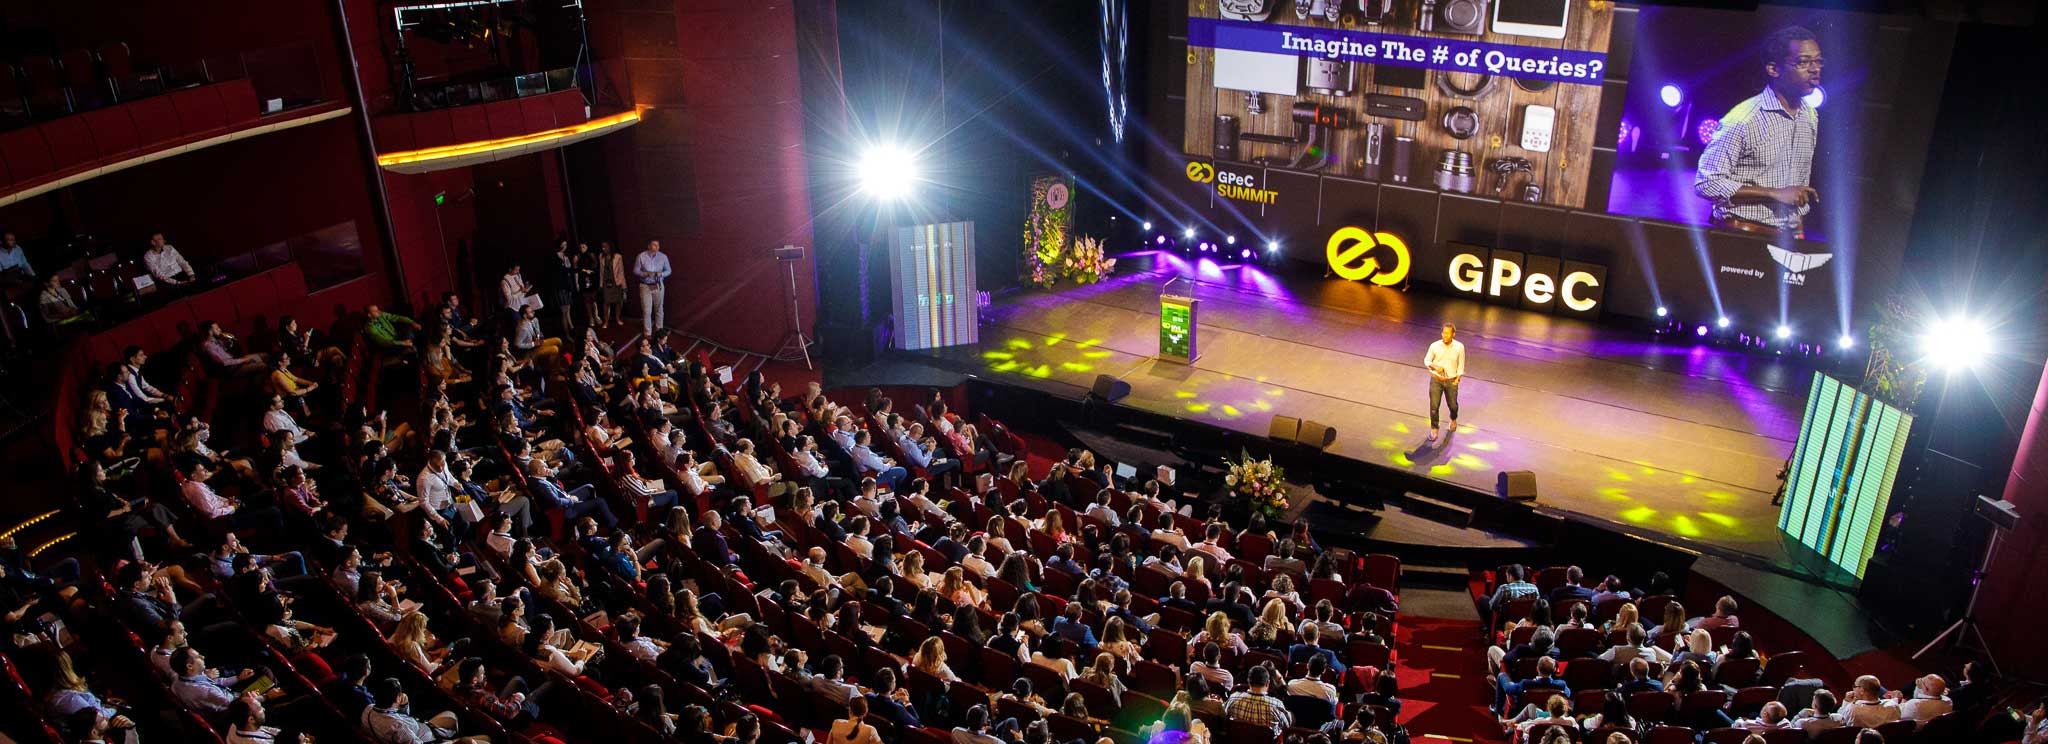 GPeC-SUMMIT-The-Most-Important-E-Commerce-and-Digital-Marketing-Event-in-CEE